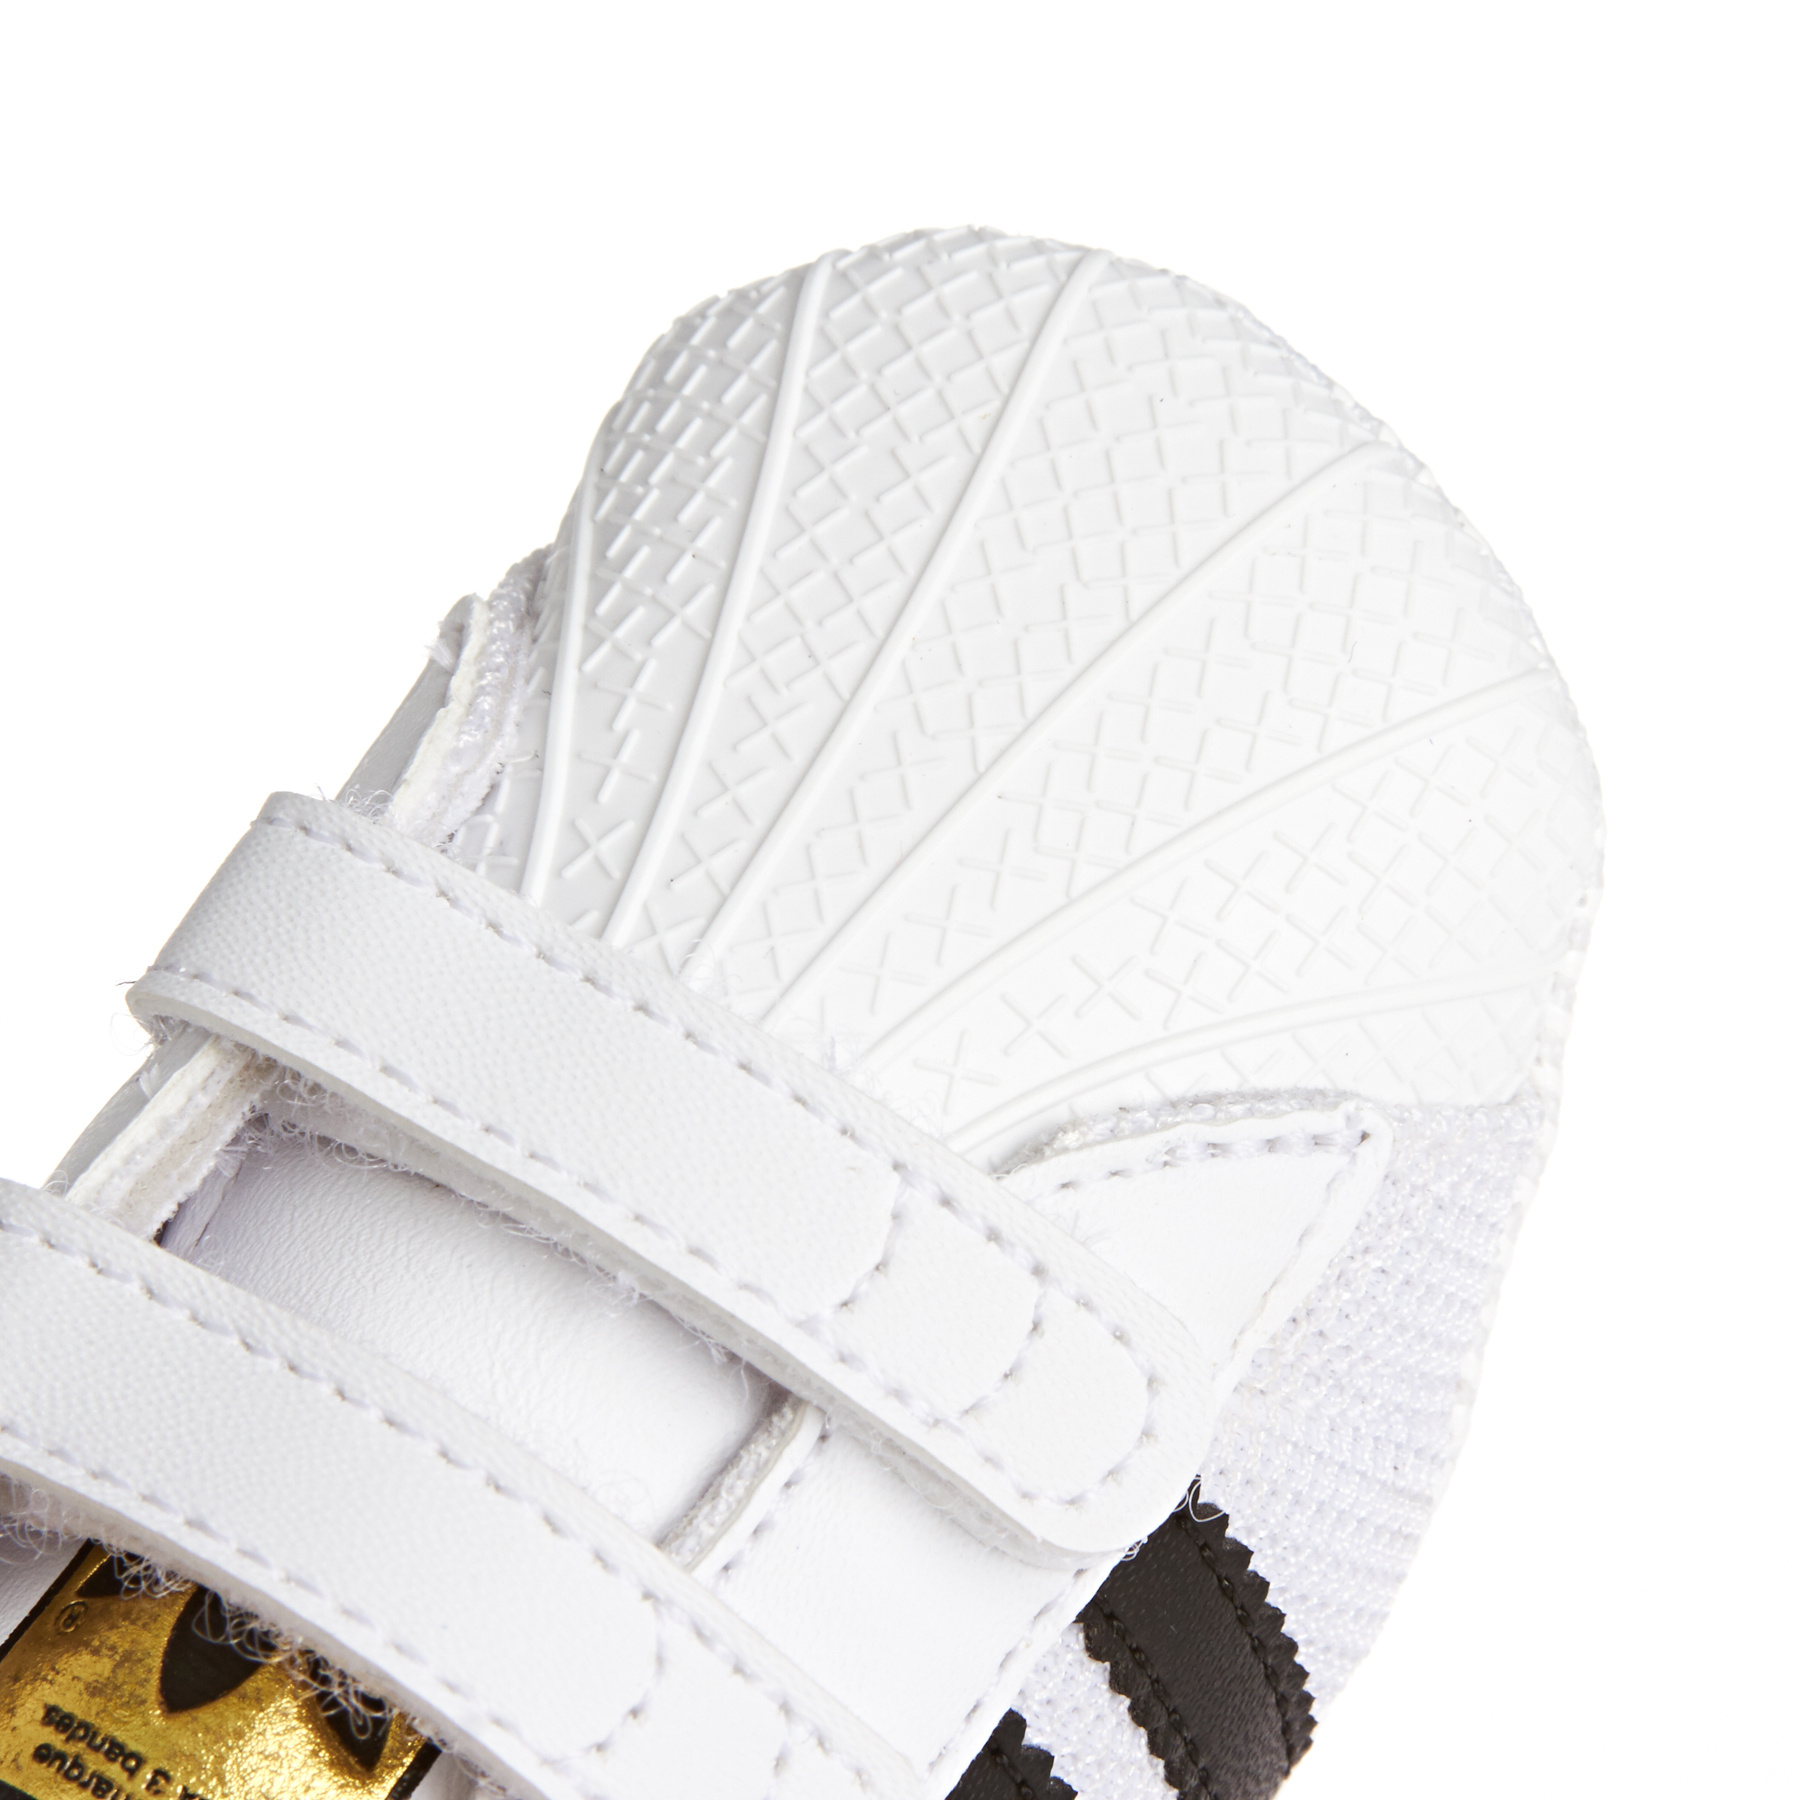 Adidas Originals Superstar Crib Shoes | Free Delivery* on